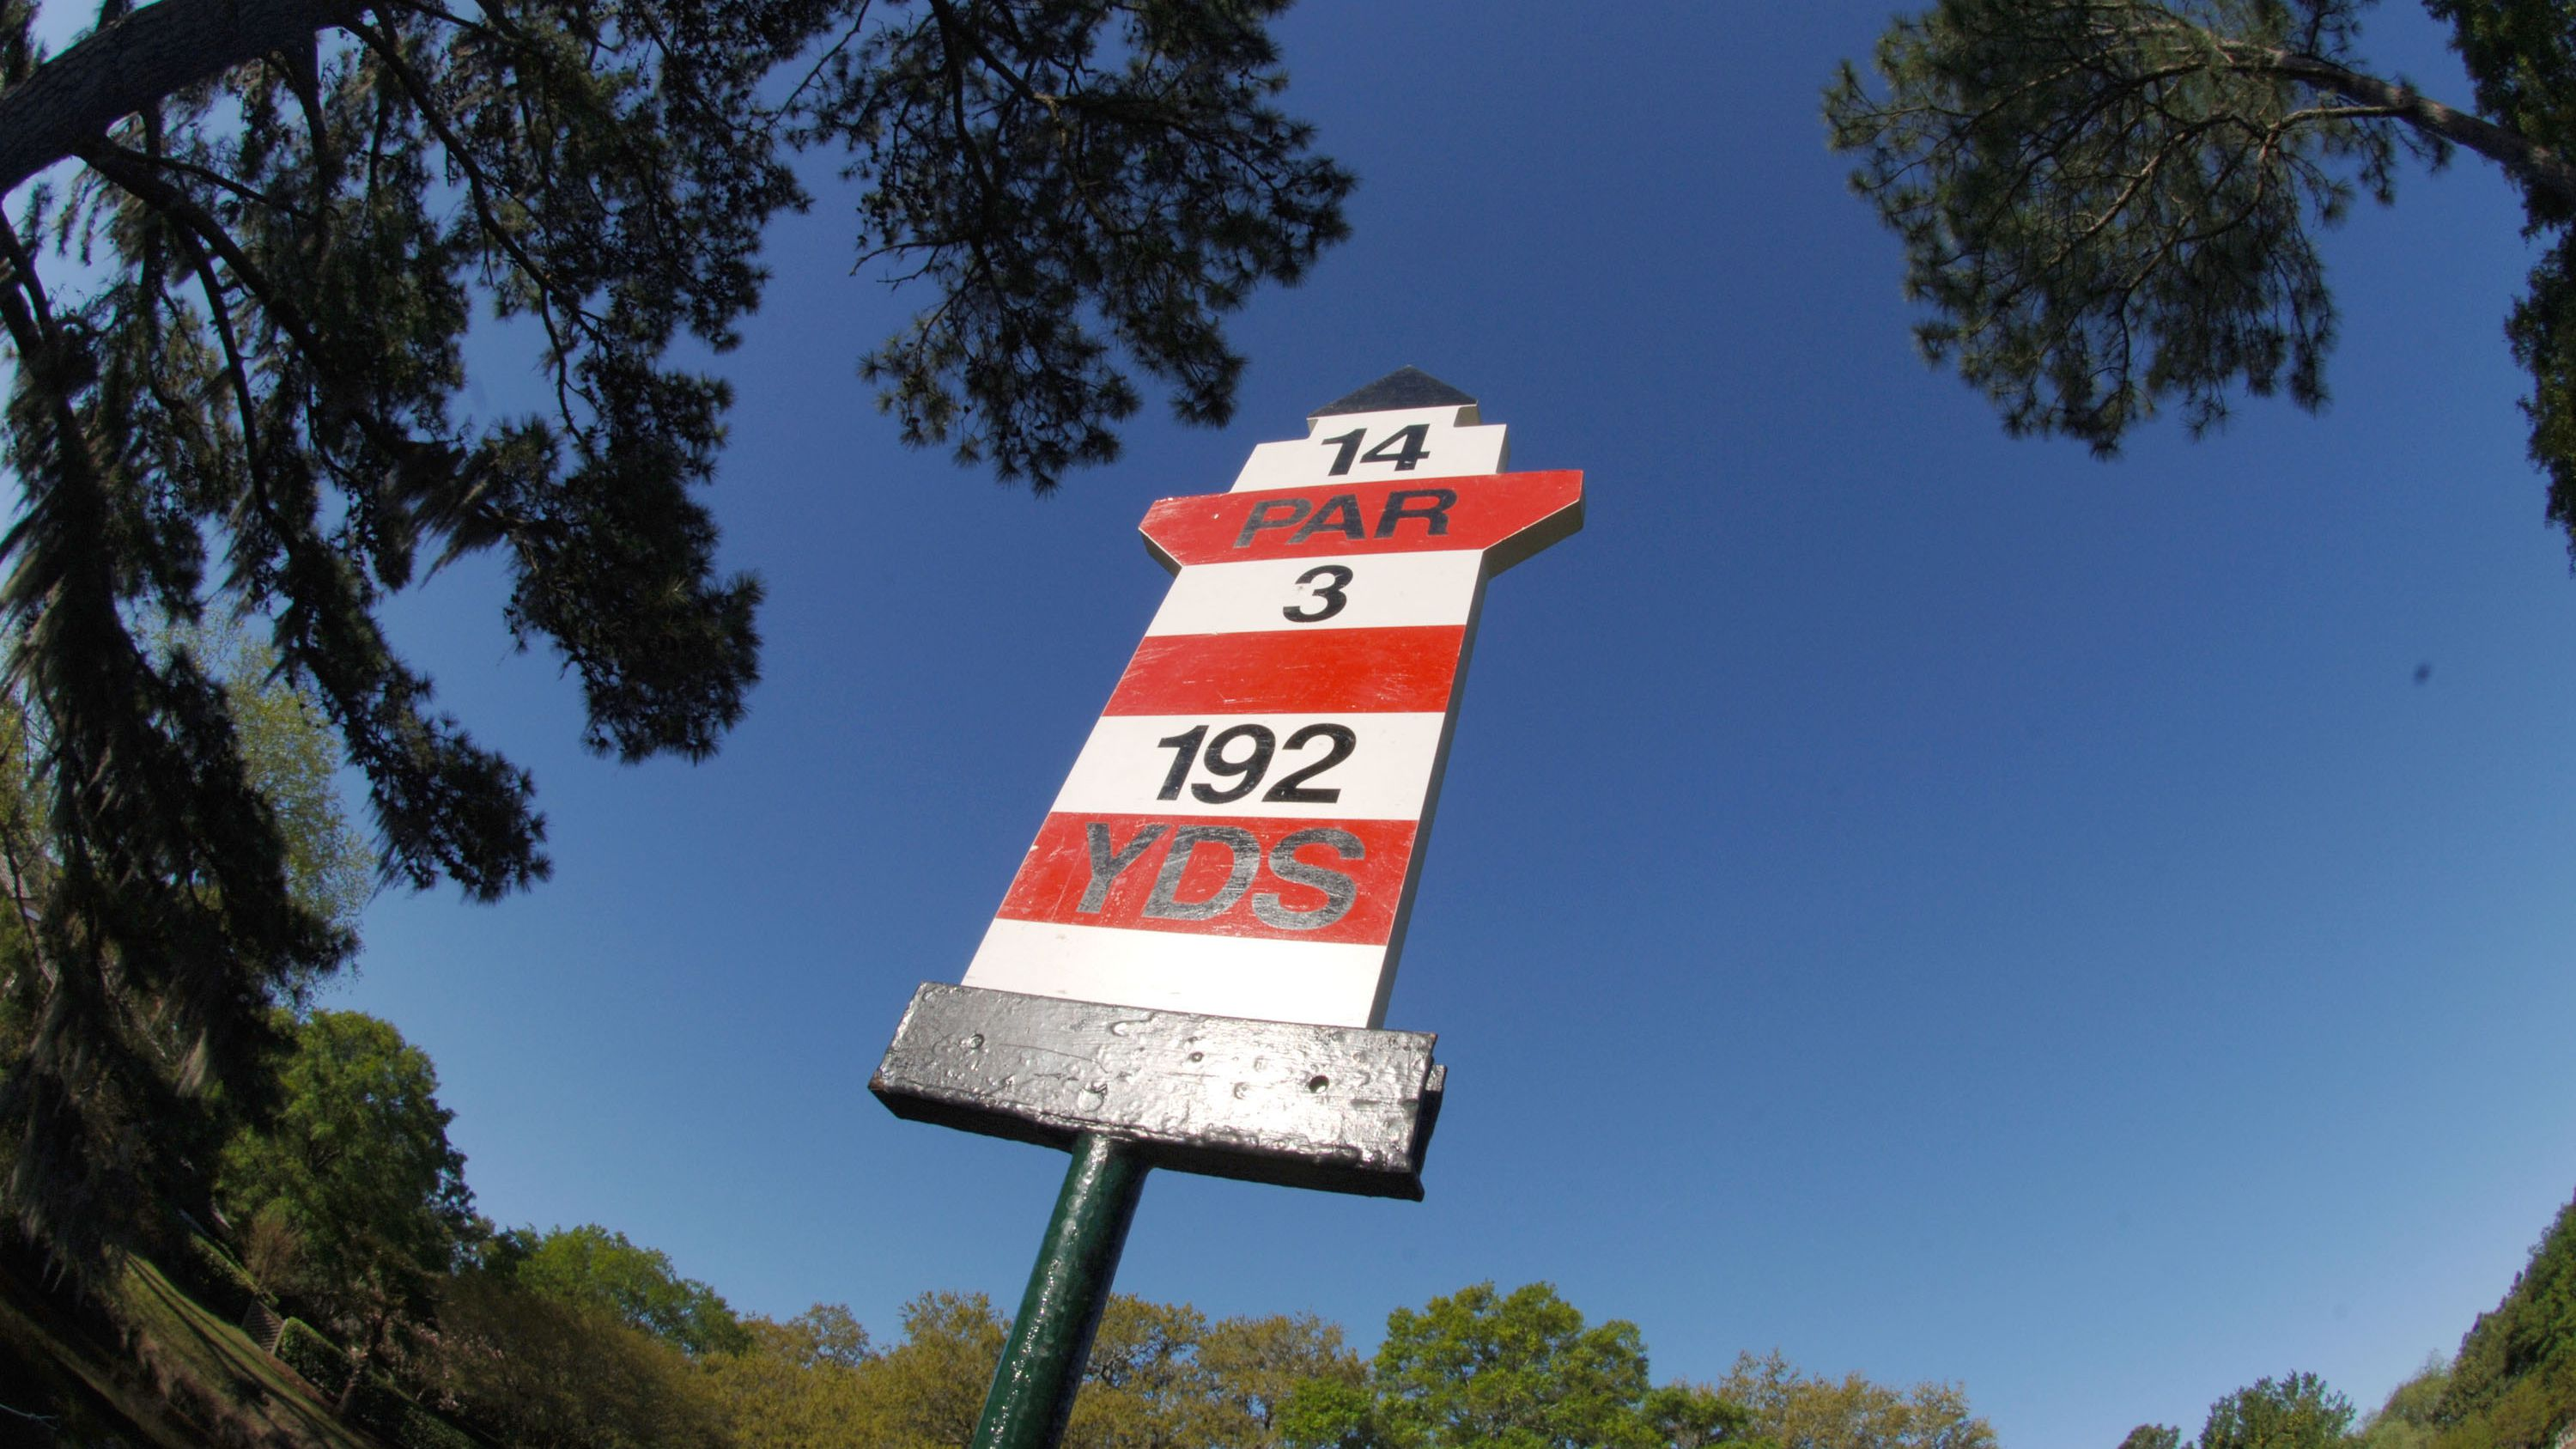 Golf Yardage Markers Give Distance To Center Of Green